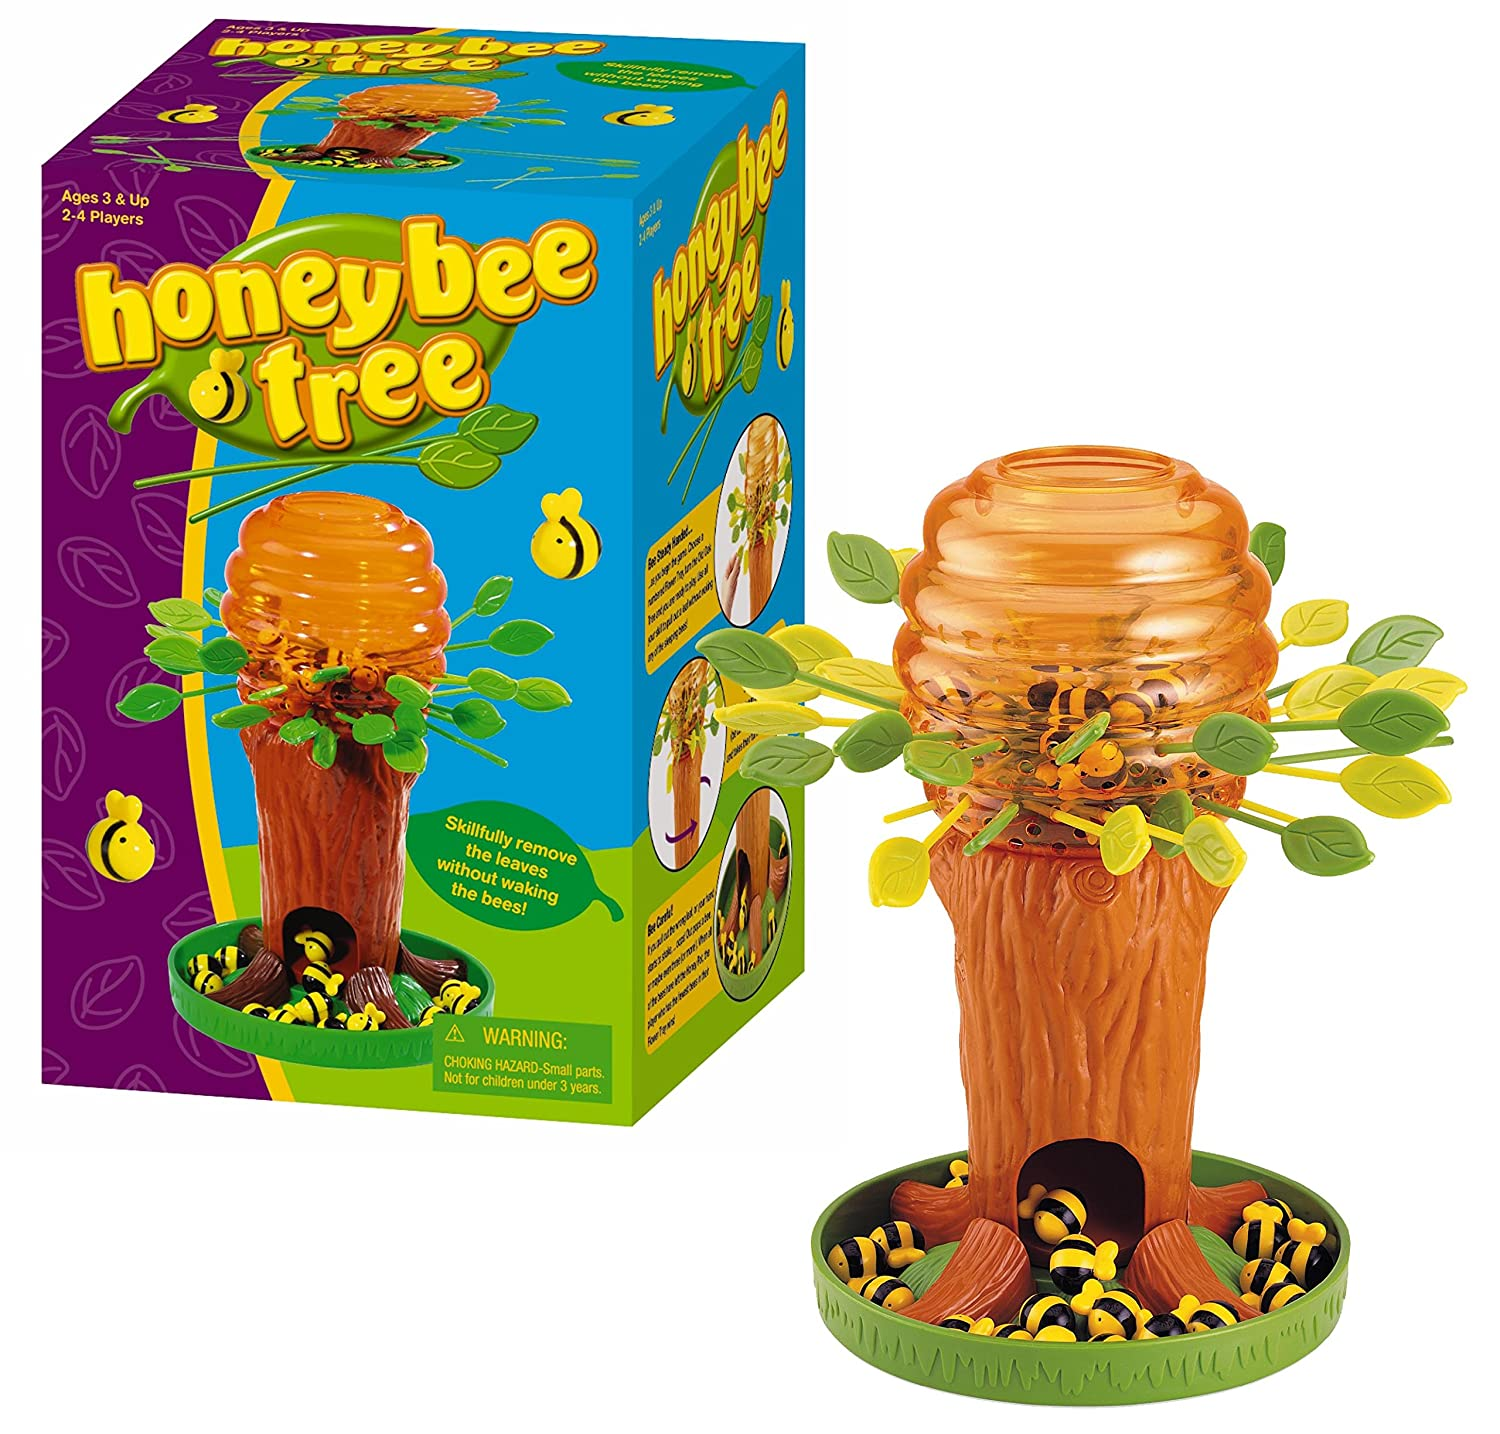 Honey Bee Tree Games for Kids